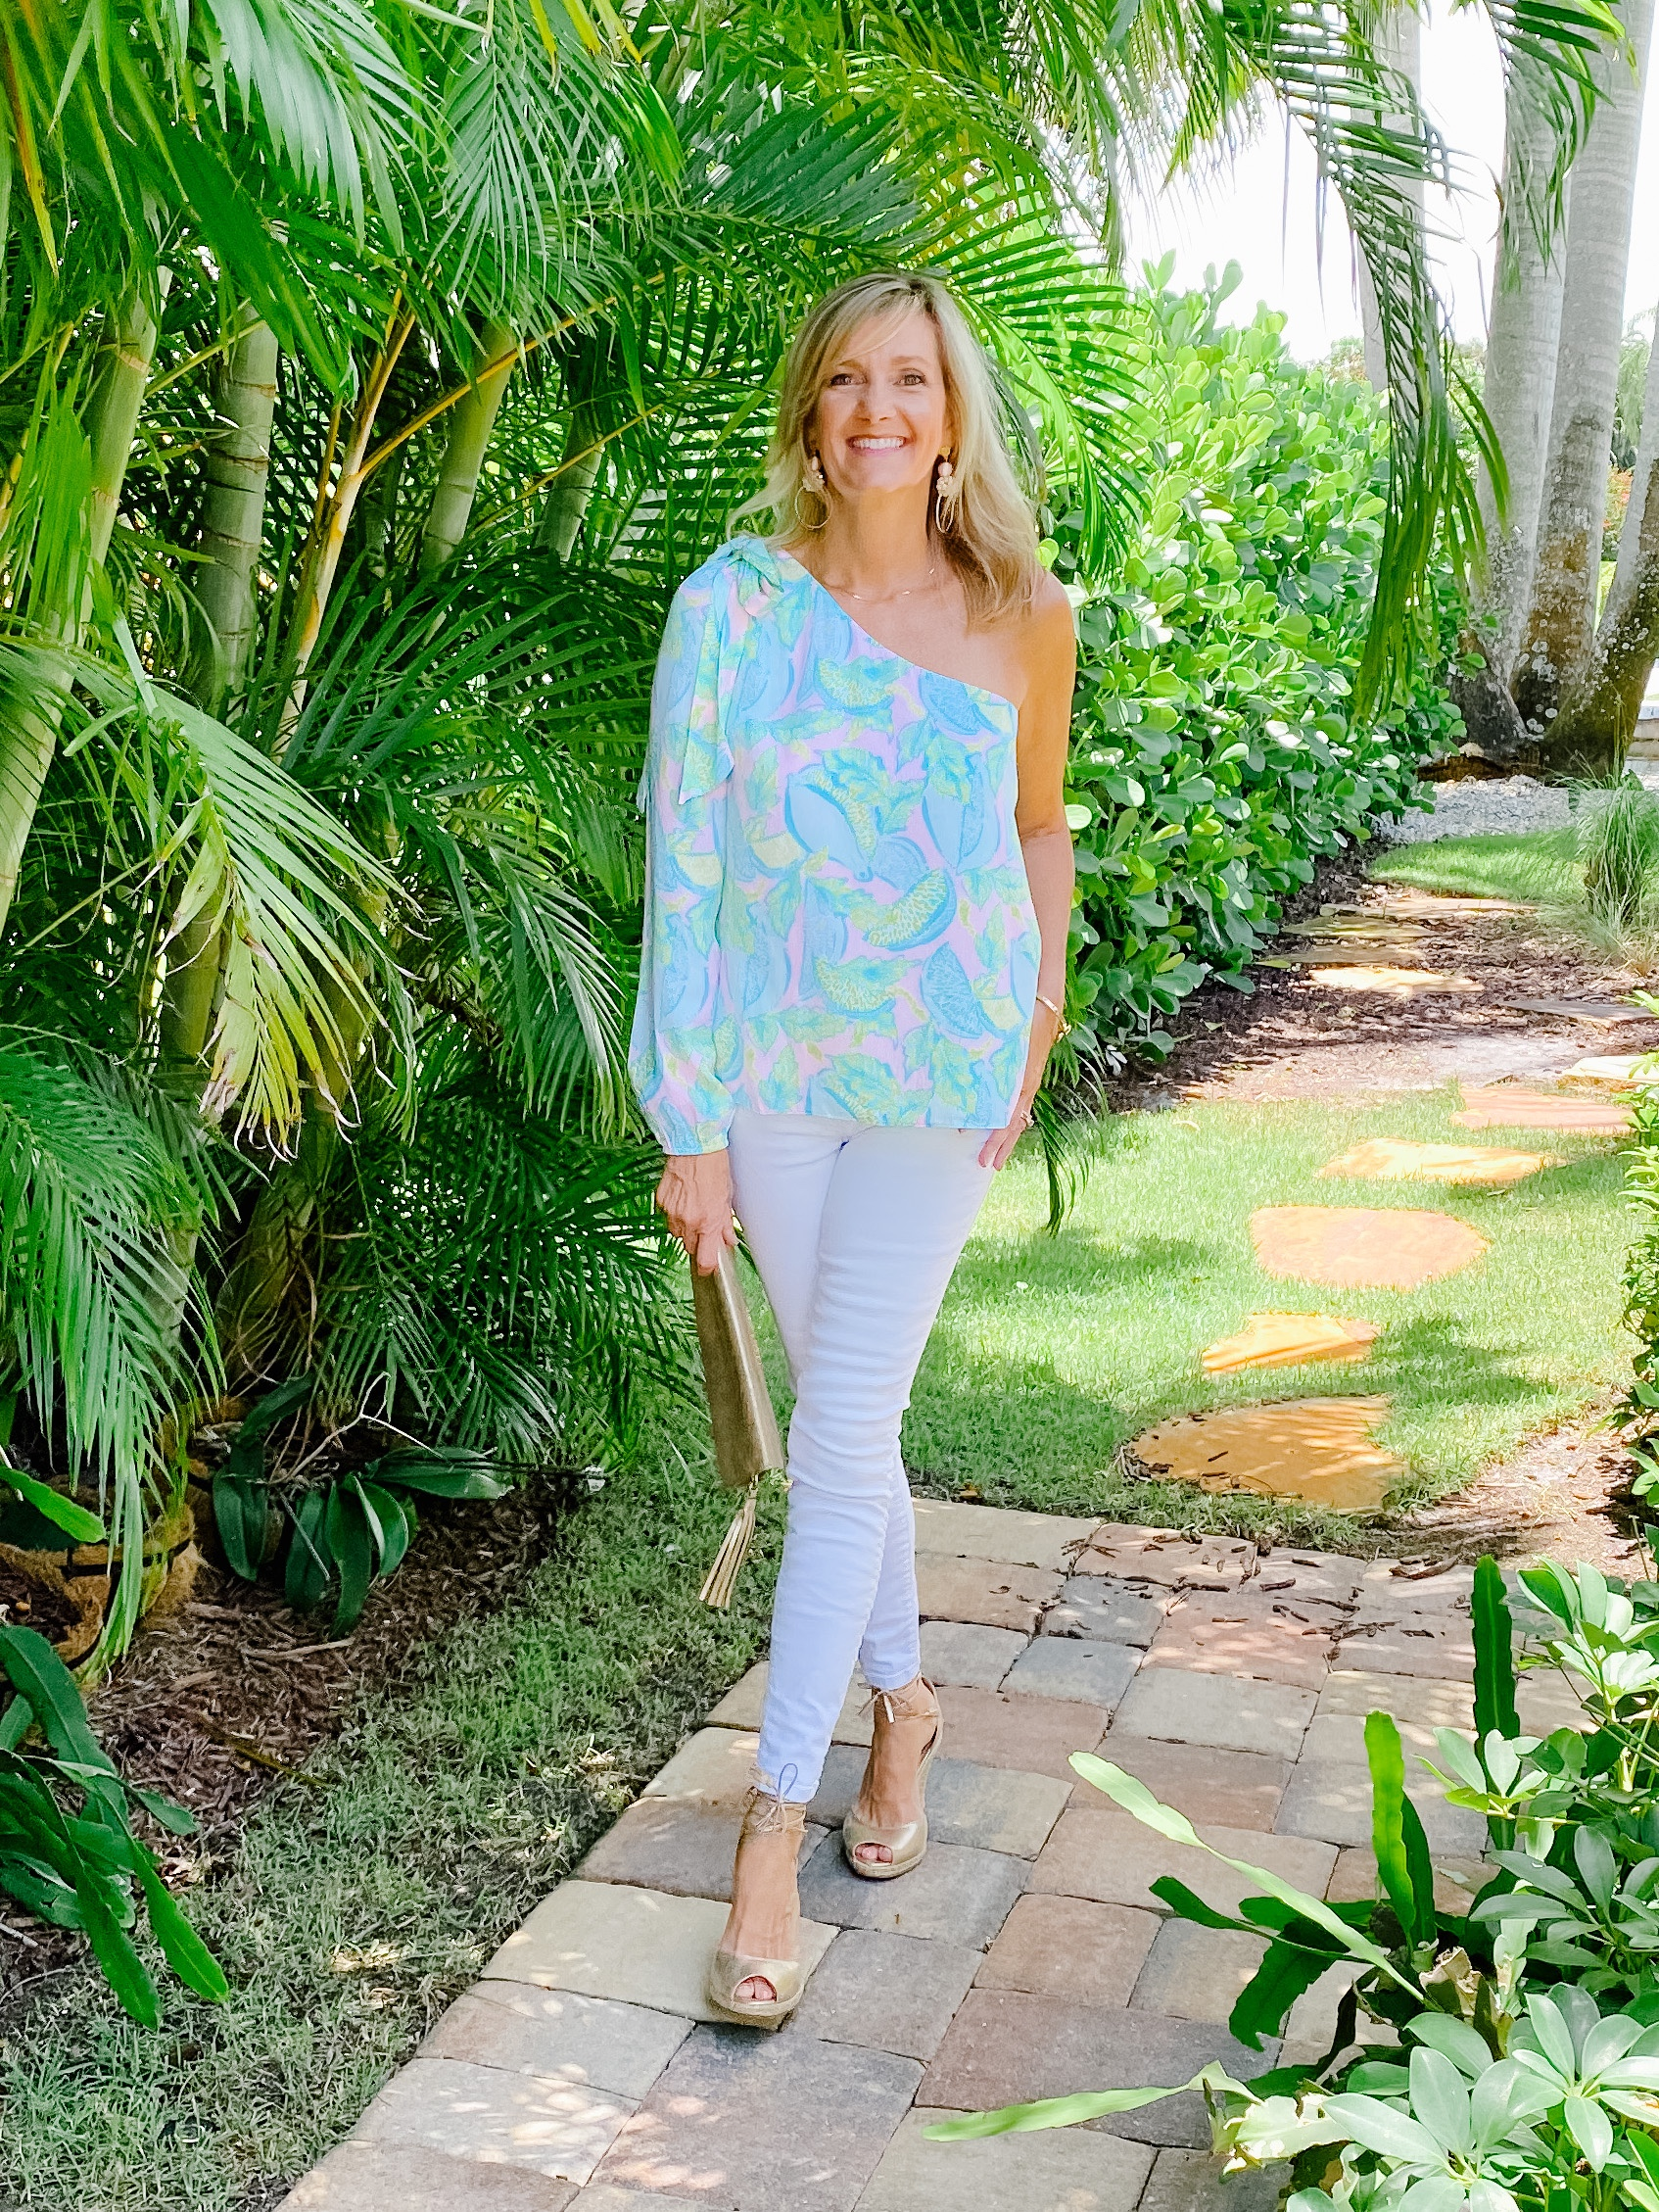 Lilly Pulitzer top and White Jeans For Date Night! 5 outfit ideas for women over 50.